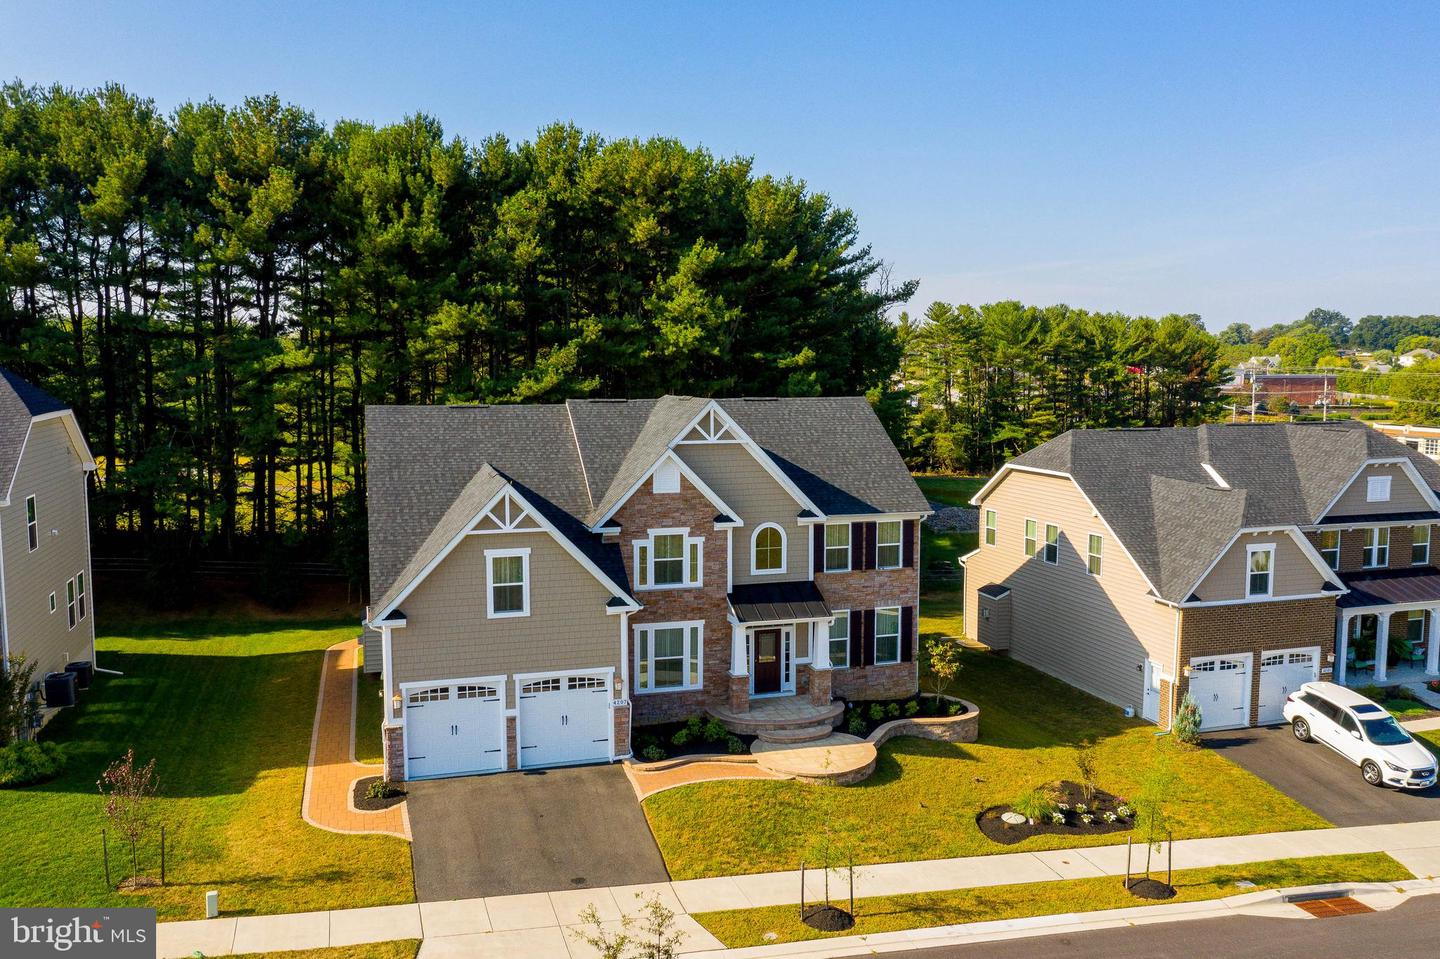 4207 PERRY HALL RD, PERRY HALL, MD 21128